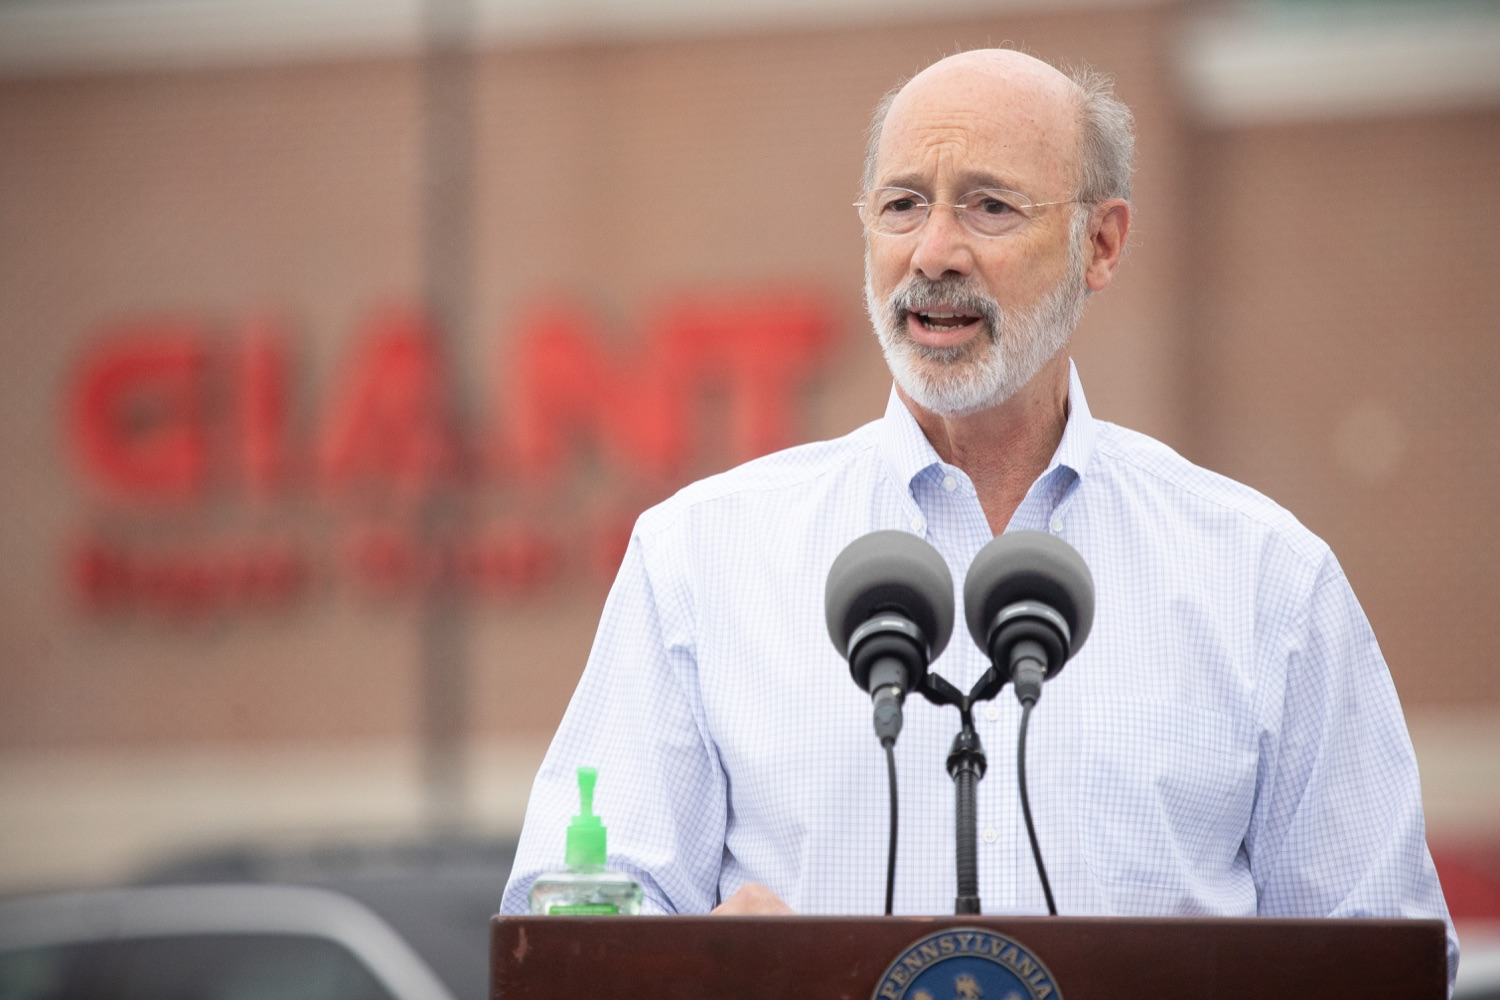 """<a href=""""https://filesource.wostreaming.net/commonwealthofpa/photo/18166_gov_cares_act_dz_08.jpg"""" target=""""_blank"""">⇣Download Photo<br></a>Pennsylvania Governor Tom Wolf speaking at the announcement.  Today, Governor Tom Wolf announced the availability of $50 million in grant funding to help employers provide hazard pay to employees in life-sustaining occupations during the COVID-19 pandemic. Hazard pay is intended to keep front-line employees working in vital industry sectors across Pennsylvania.  Harrisburg, PA  July 16, 2020"""